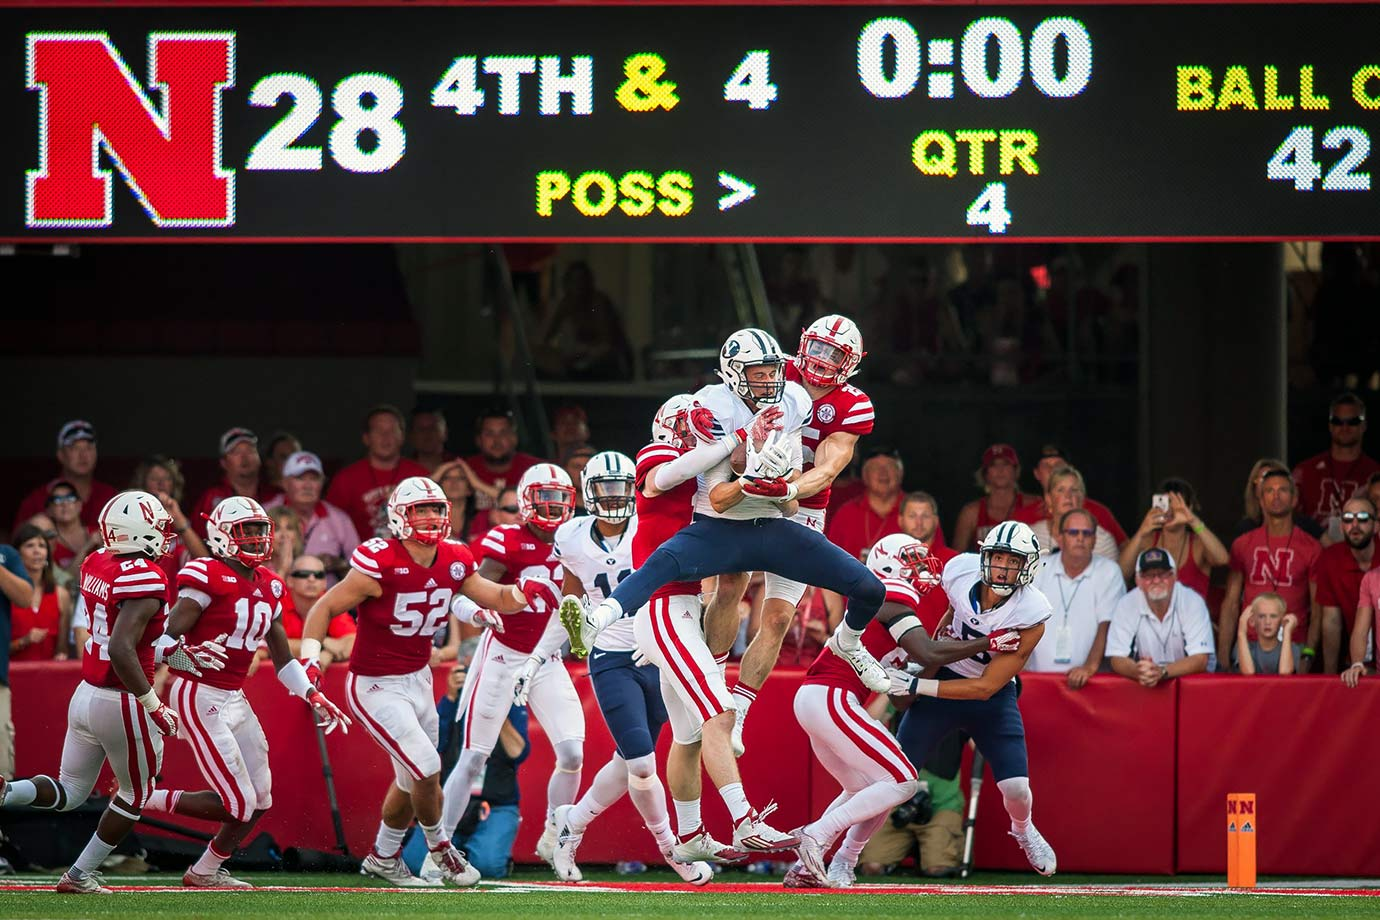 We had a few options for great BYU finishes, but we opted for the one that got it all started. The Cougars scored 17 straight points in the second quarter to take a 24–14 lead into halftime, but Nebraska responded with two third-quarter touchdowns to take the lead. Then backup quarterback Tanner Mangum, filling in for injured starter Taysom Hill, tossed a 42-yard bomb to Mitch Mathews on the final play of the game to give BYU the victory.